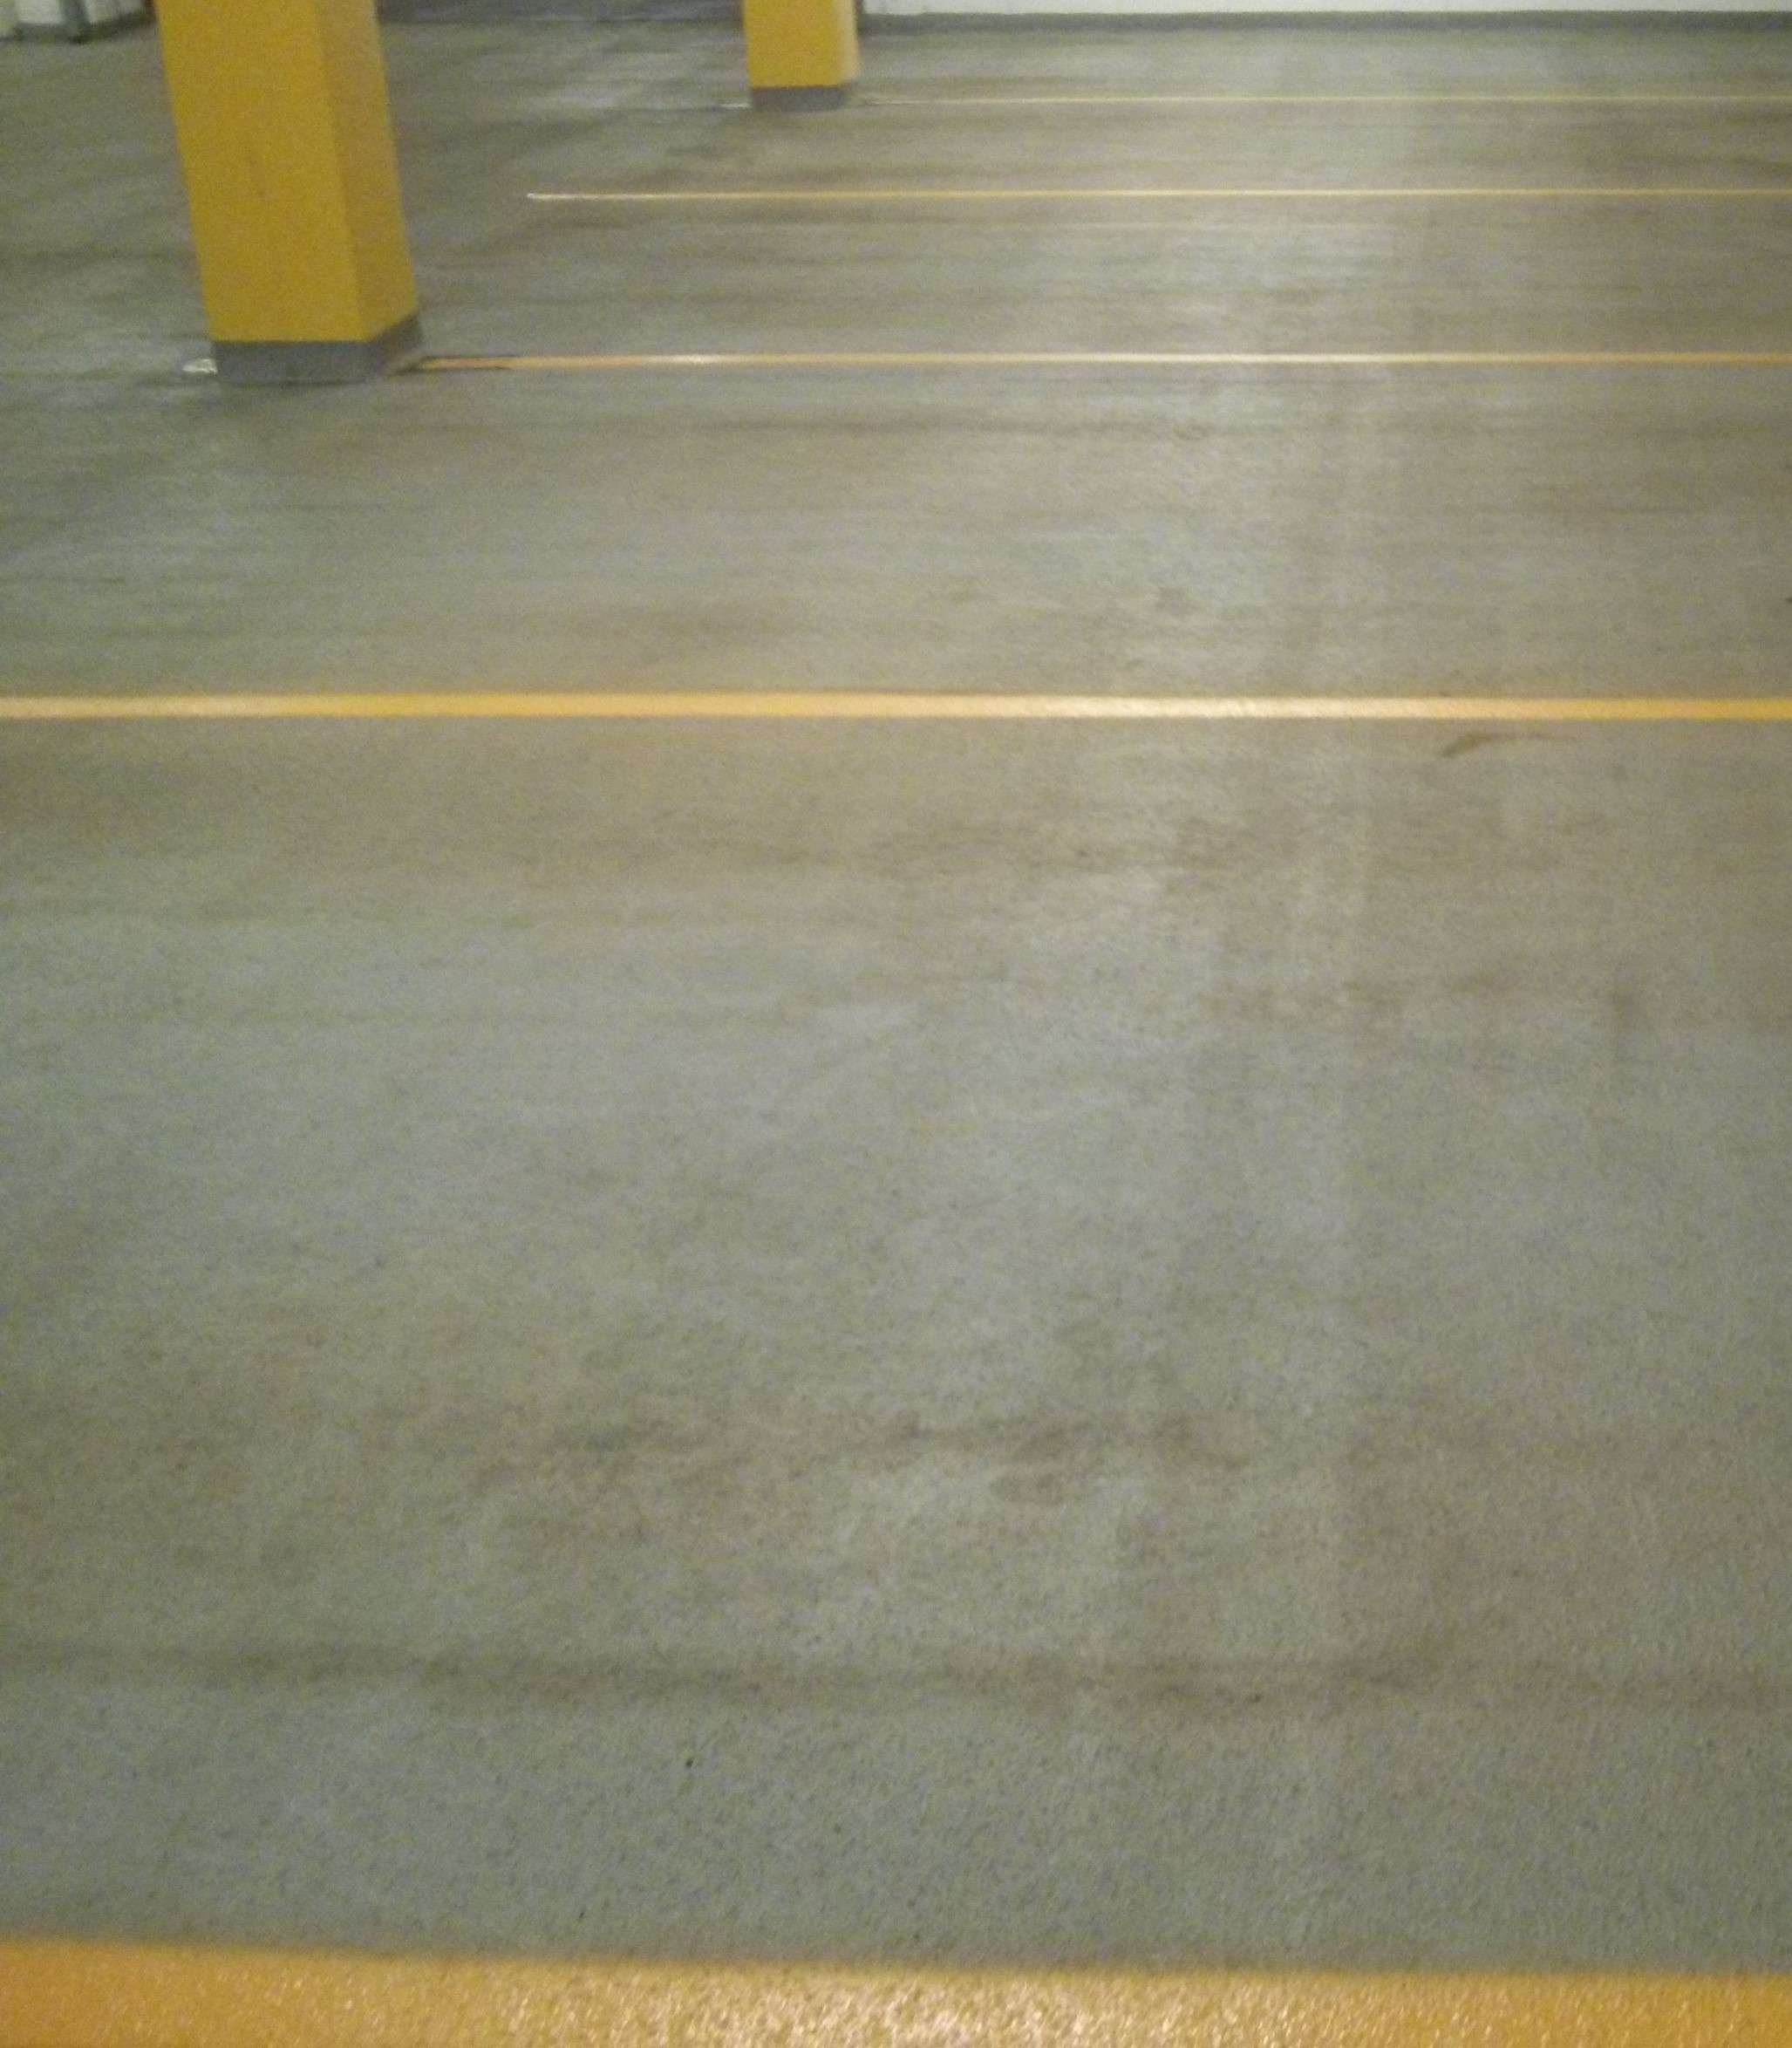 Parking garage floor cleaning and re striping job in minneapolis parking garage floor cleaning and re striping in minneapolis solutioingenieria Image collections